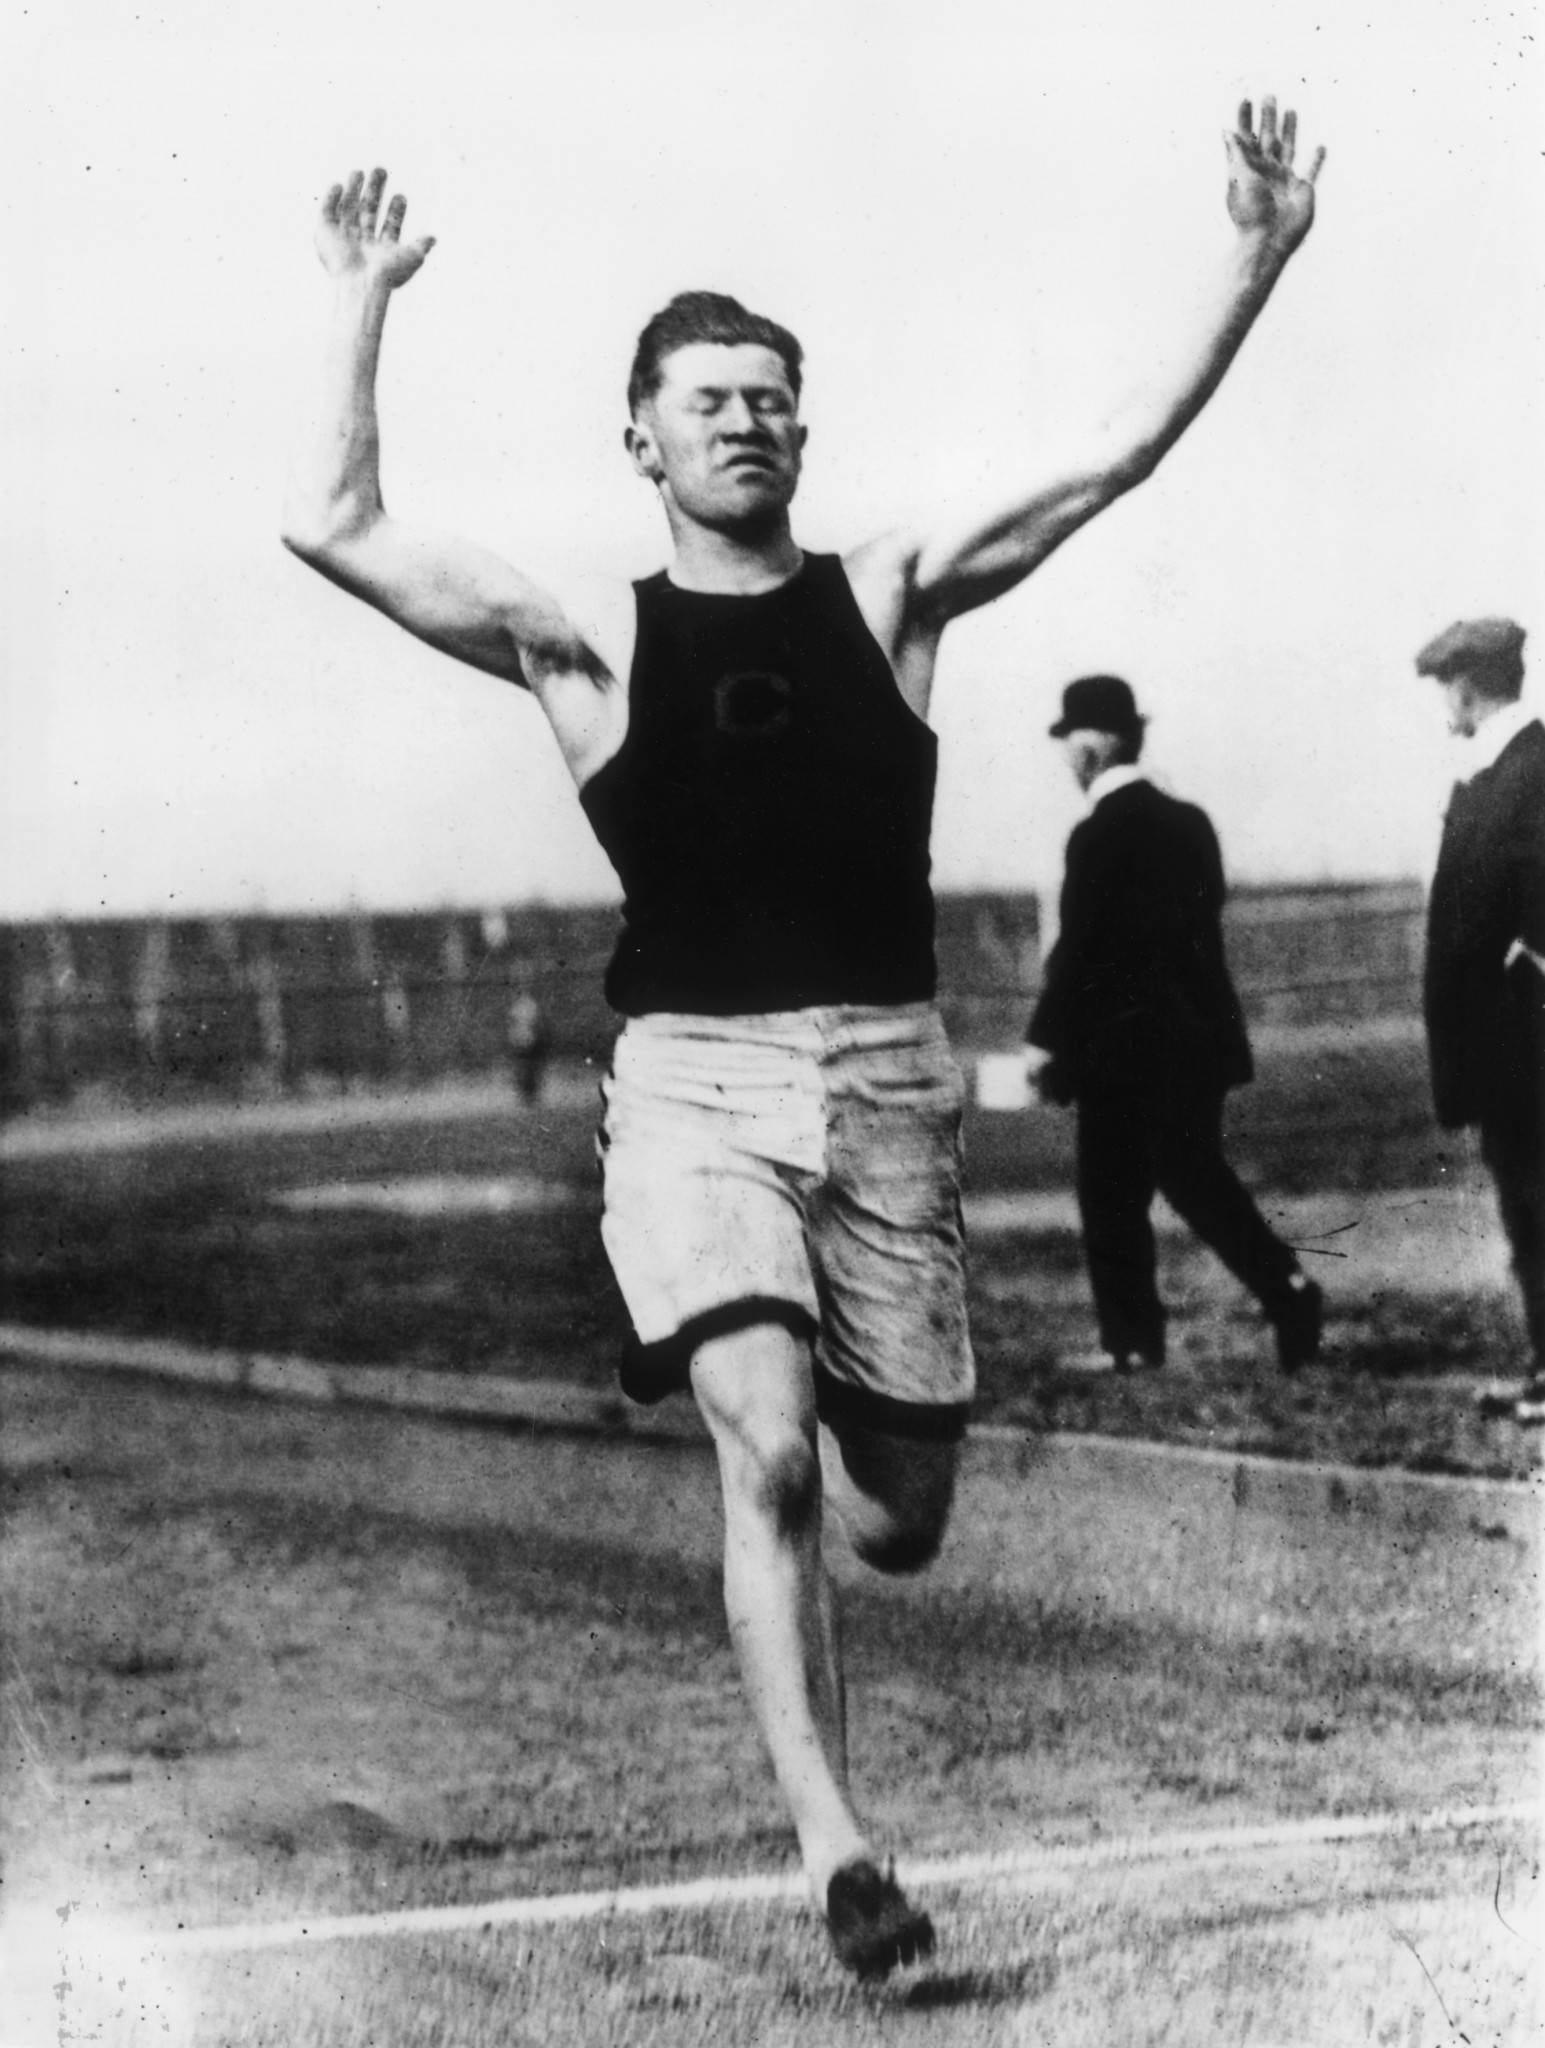 Jim Thorpe won Olympic gold medals in decathlon and pentathlon in 1912 ©Getty Images